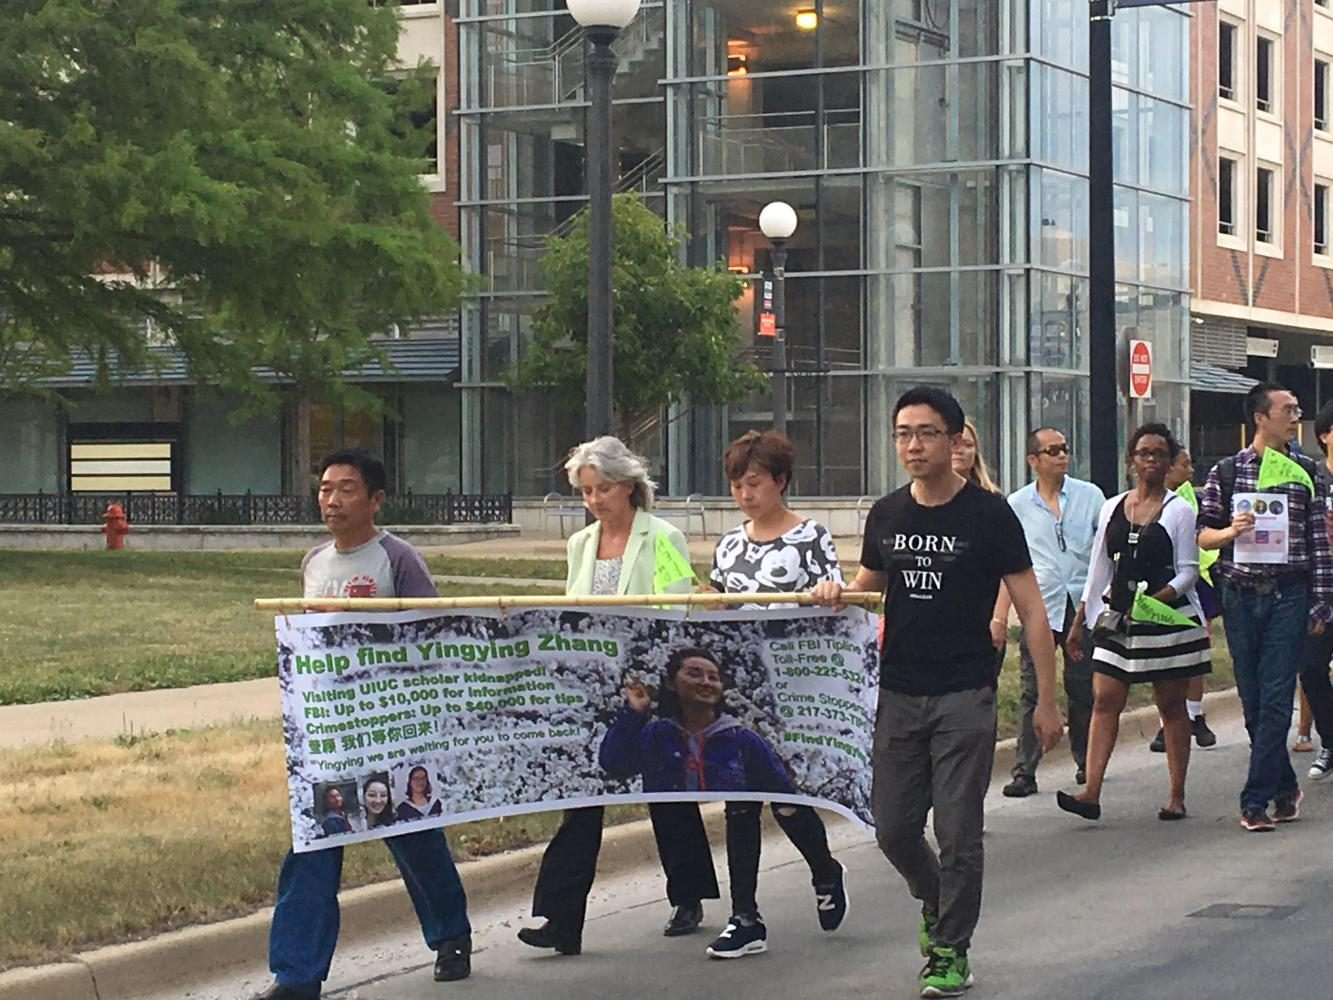 Community+members+walked+to+support+Yingying+Zhang%2C+a+Chinese+visiting+scholar+who+went+missing+on+July+9.+Alleged+kidnapper+Brendt+Christensen+appeared+in+court+today+and+was+not+granted+bond.+